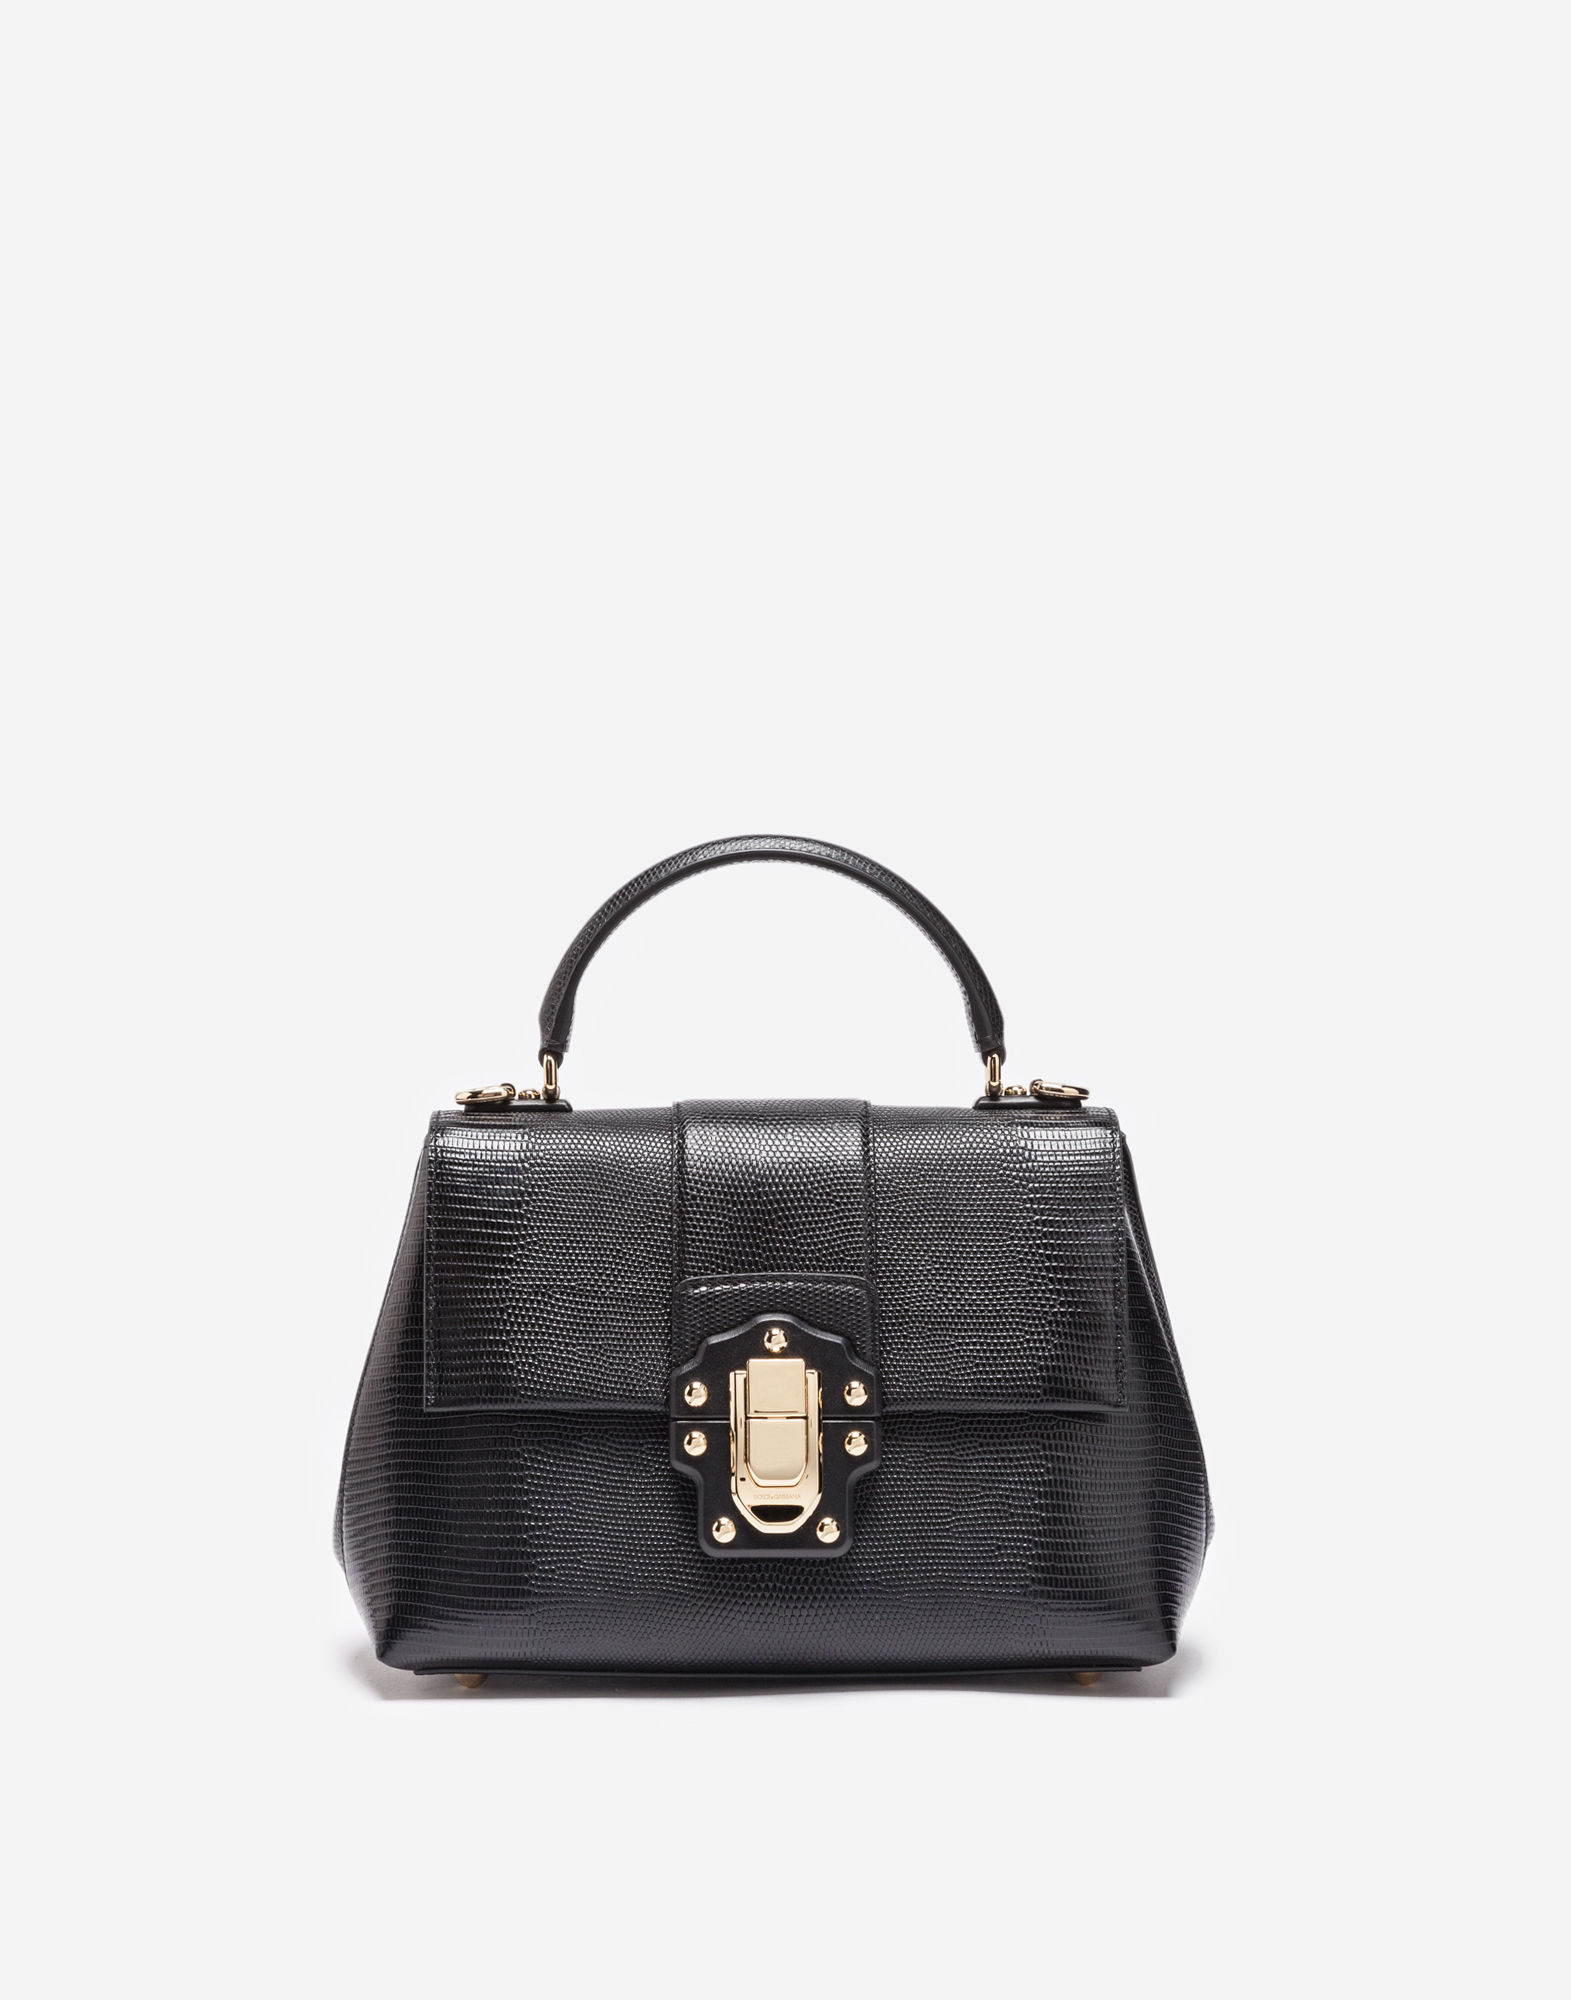 Lucia Small Embossed Leather Shoulder Bag in Black